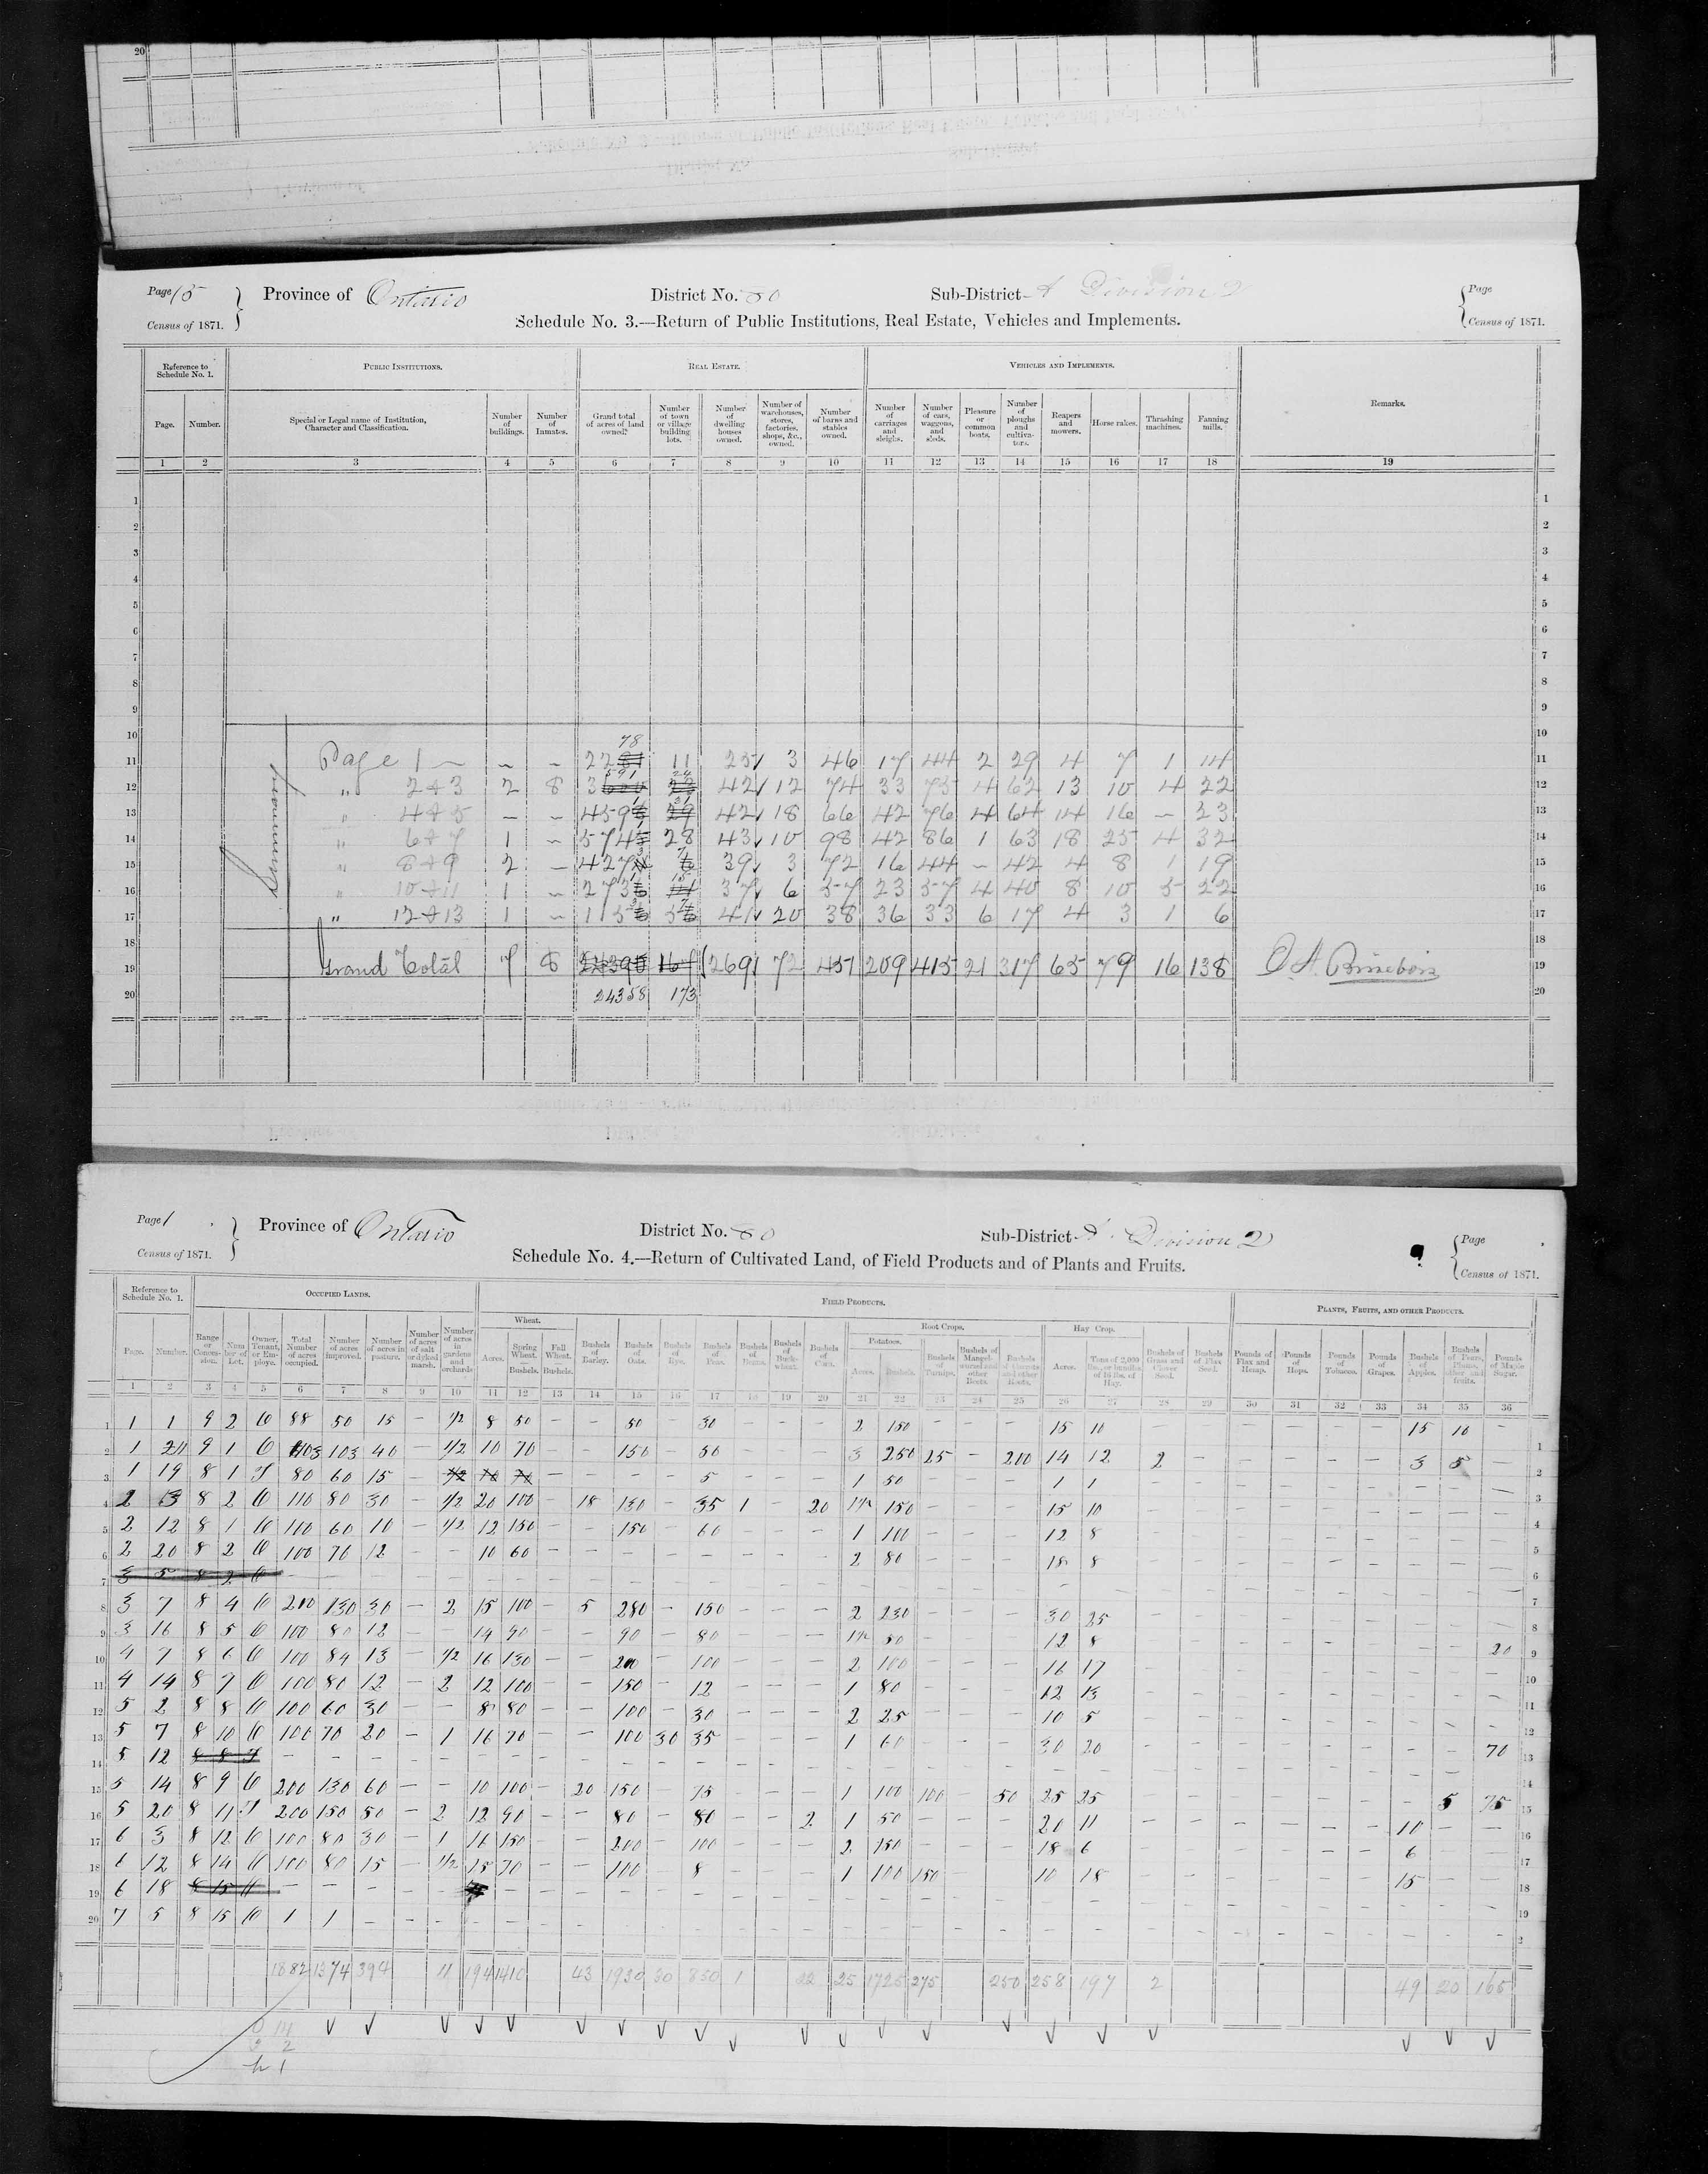 Title: Census of Canada, 1871 - Mikan Number: 142105 - Microform: c-10018